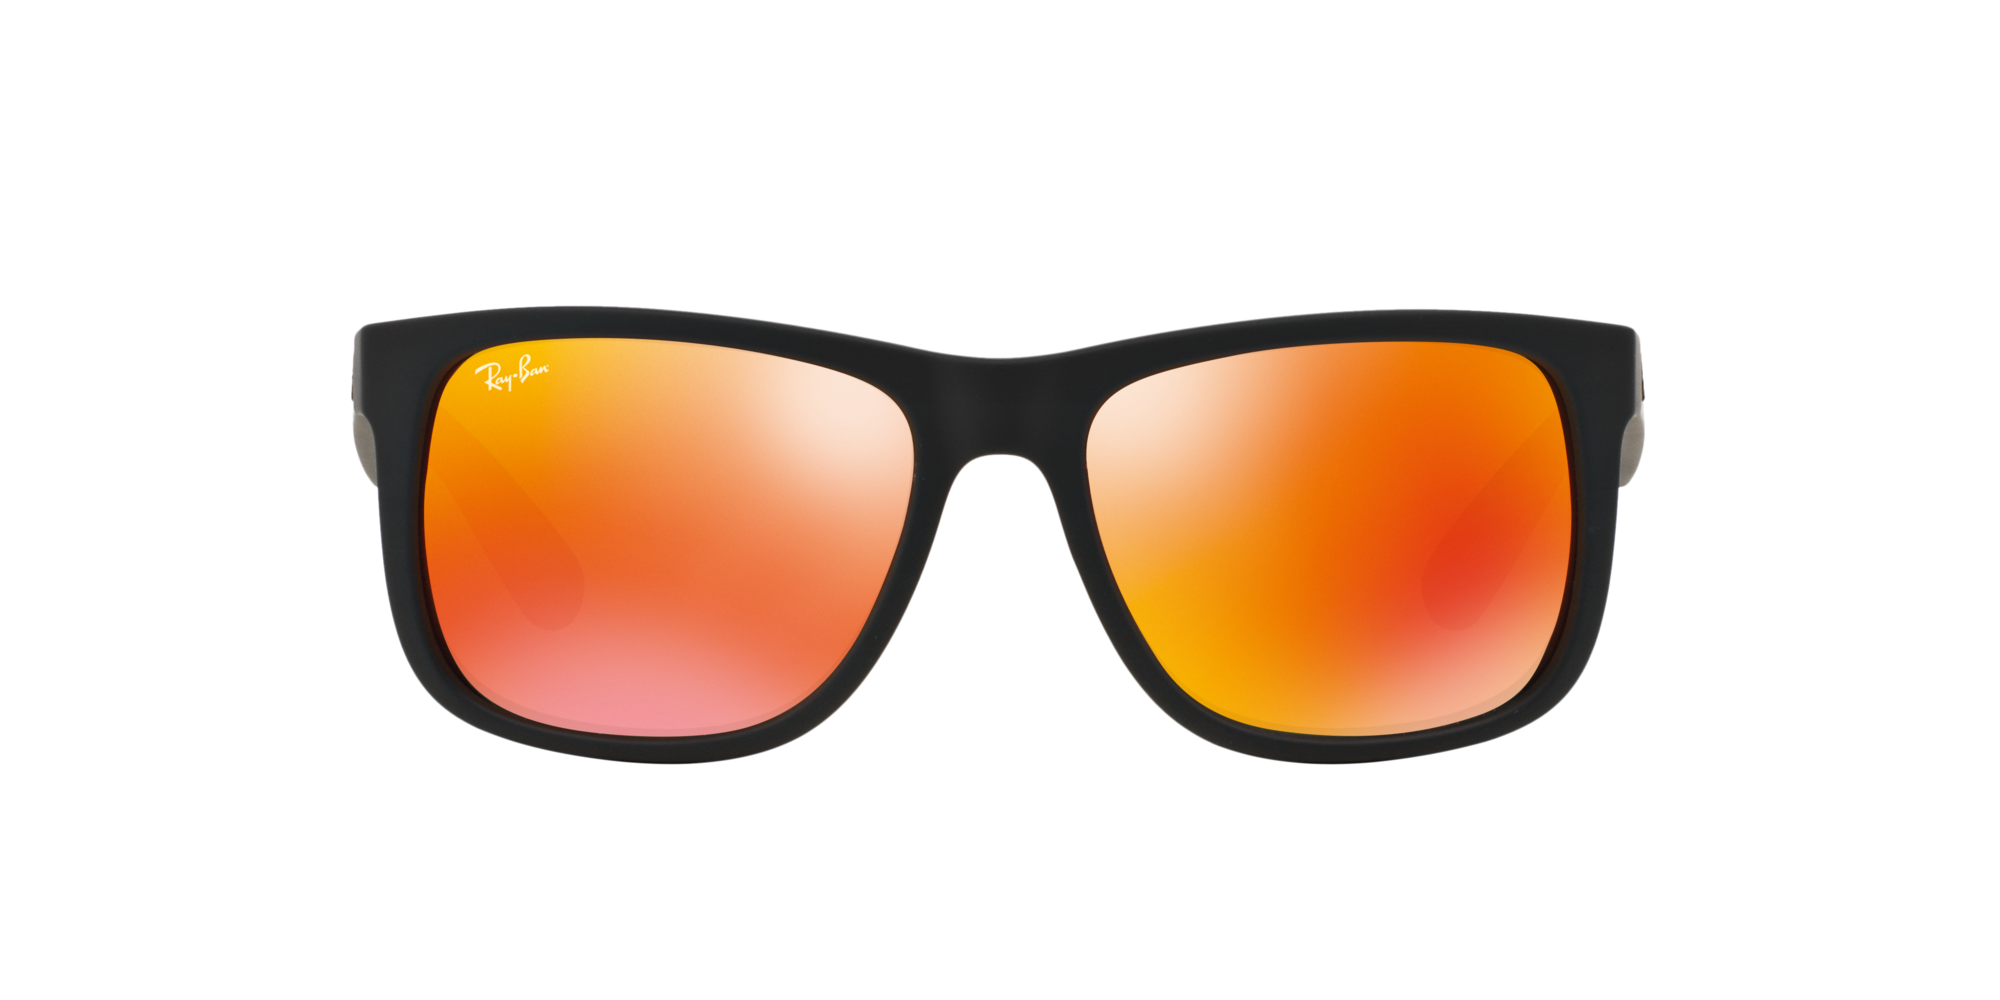 804f475be80a4 gafas de sol RAY-BAN JUSTIN RB 4165 622 6Q. 360° Product View 360° Product  View ...